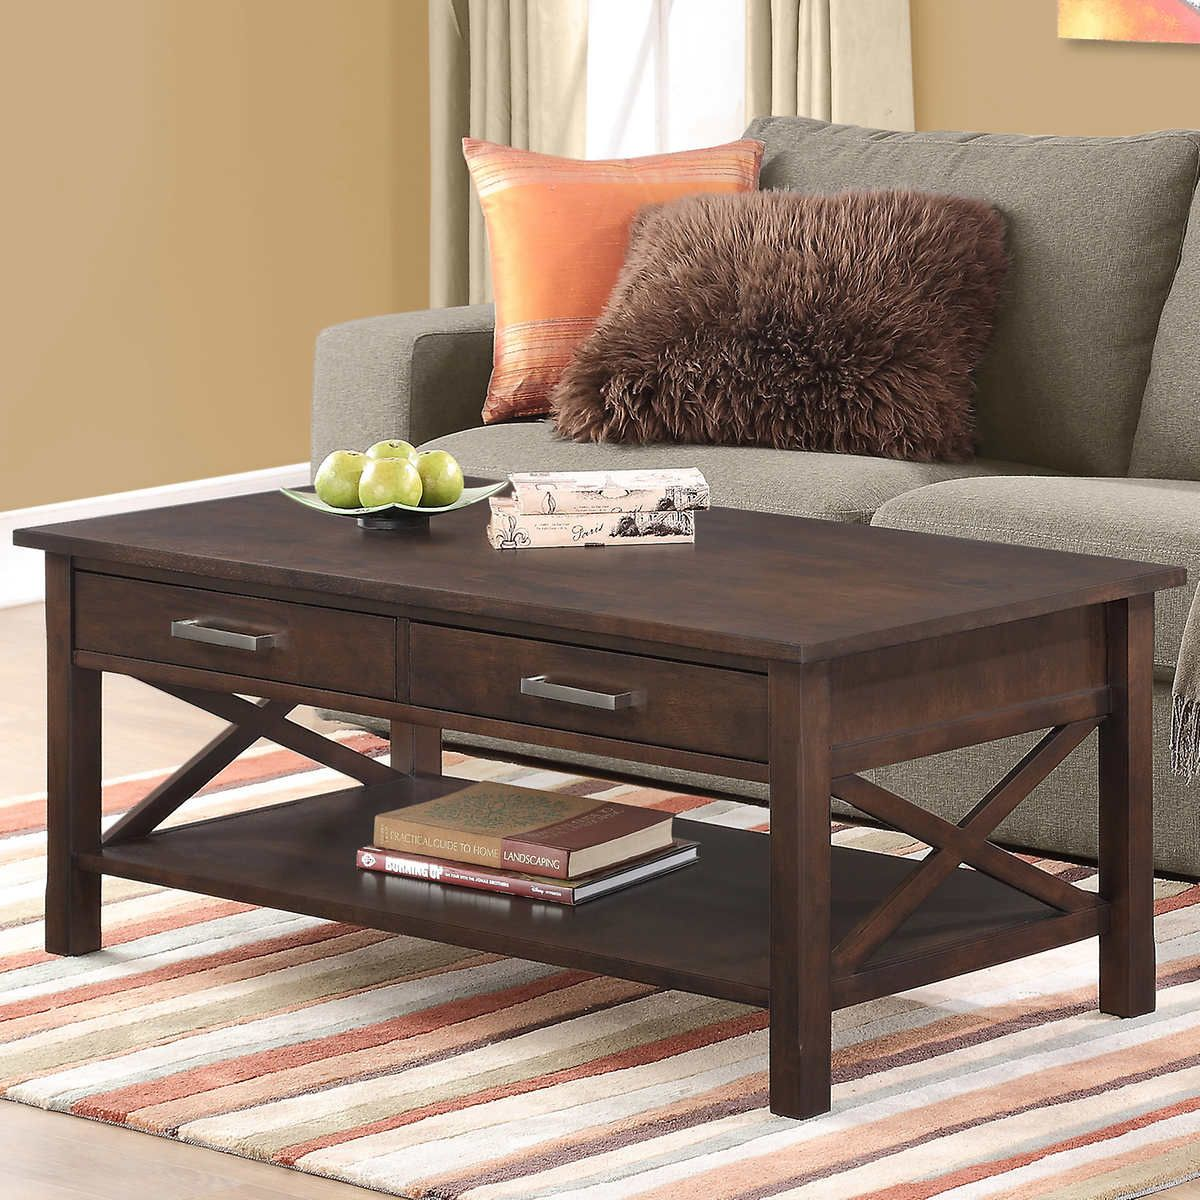 pin annora the sofa interior table tables accent custom home office furniture check more antique oak side with drawer chairs patio serving trunk end argos bedroom off white